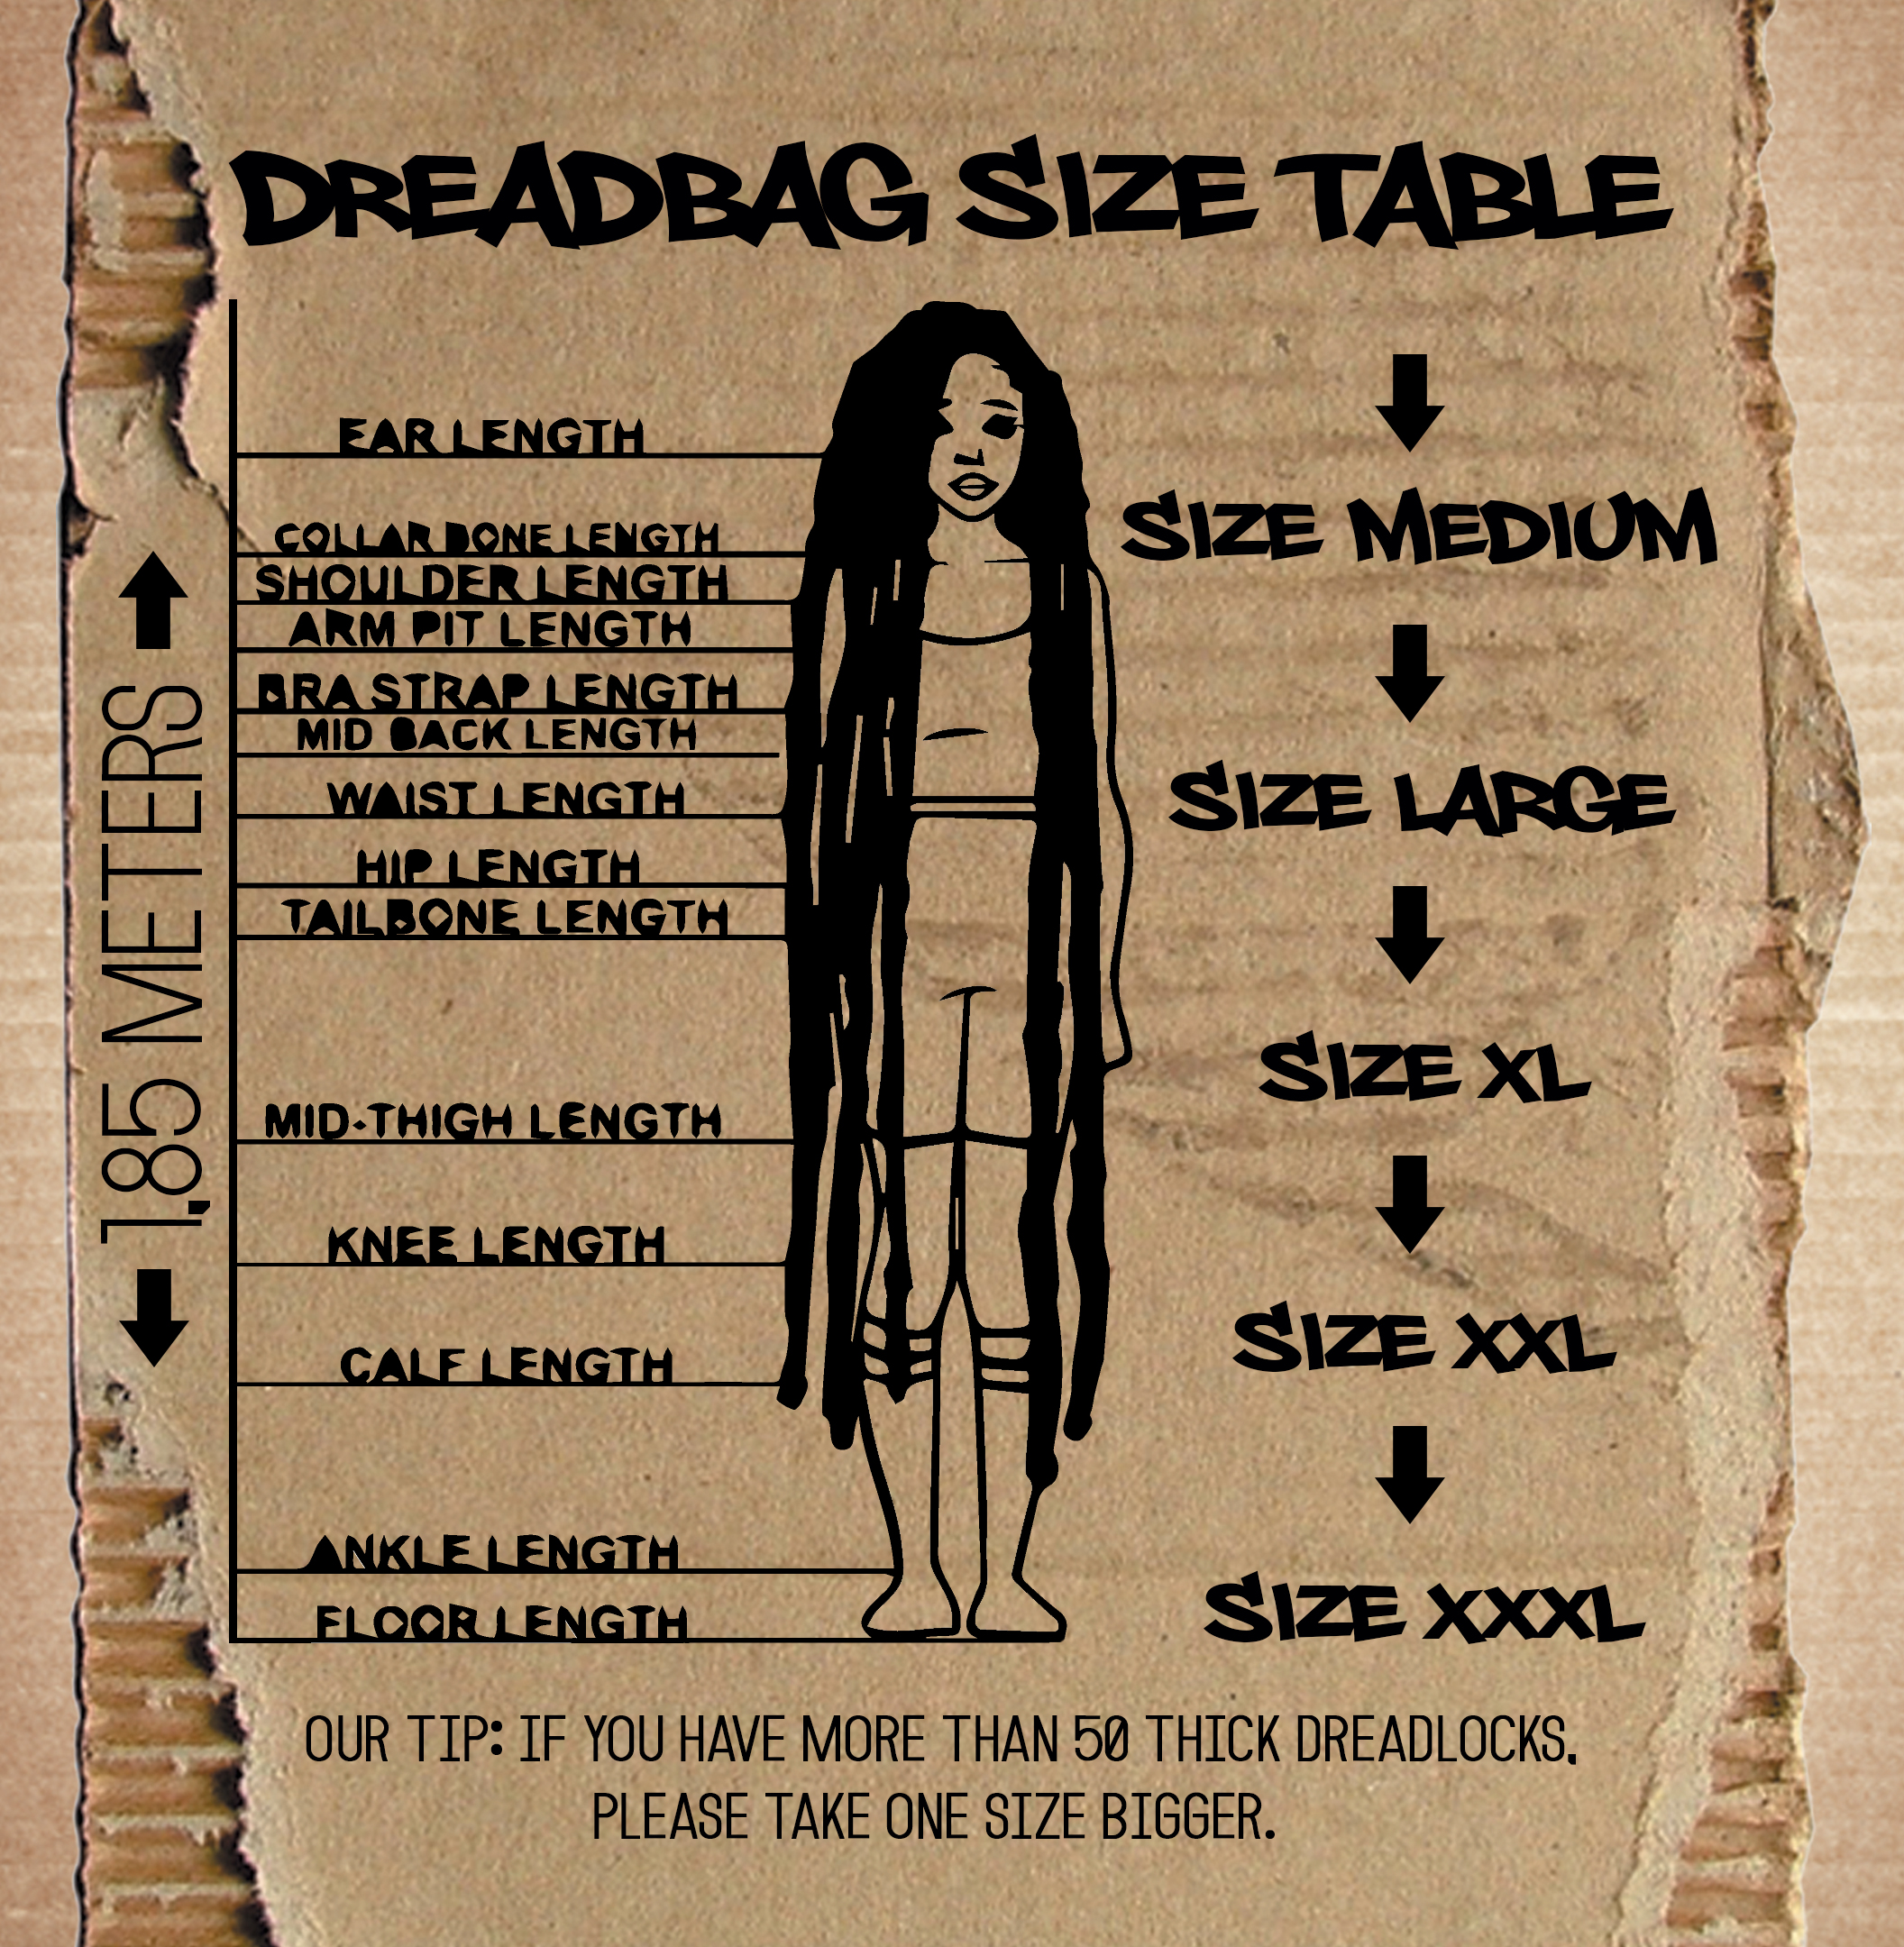 Which dreadbag size fits me? Dreadbag size table